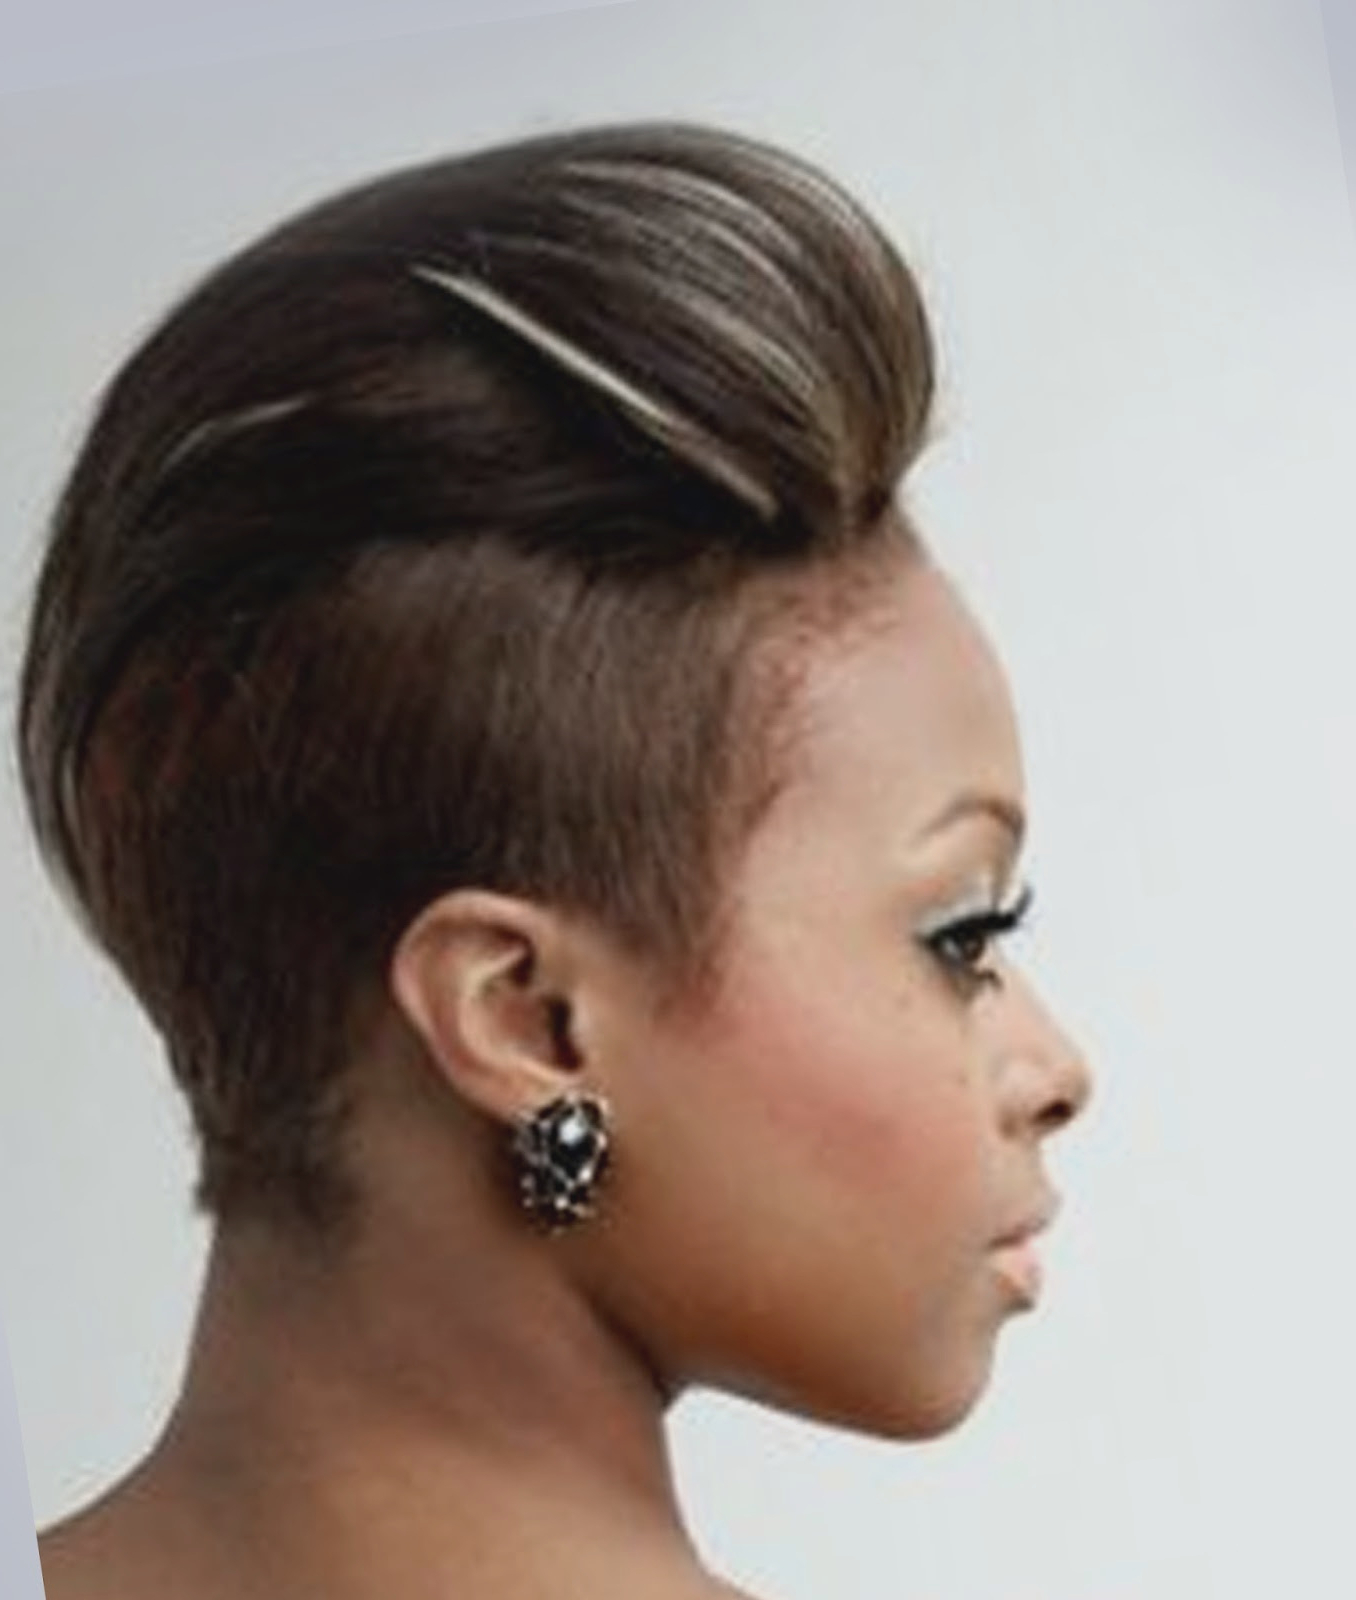 Current Designed Mohawk Hairstyles For Hairstyles For Women : View Mohawk Hairstyles For Black Women On A (View 15 of 20)